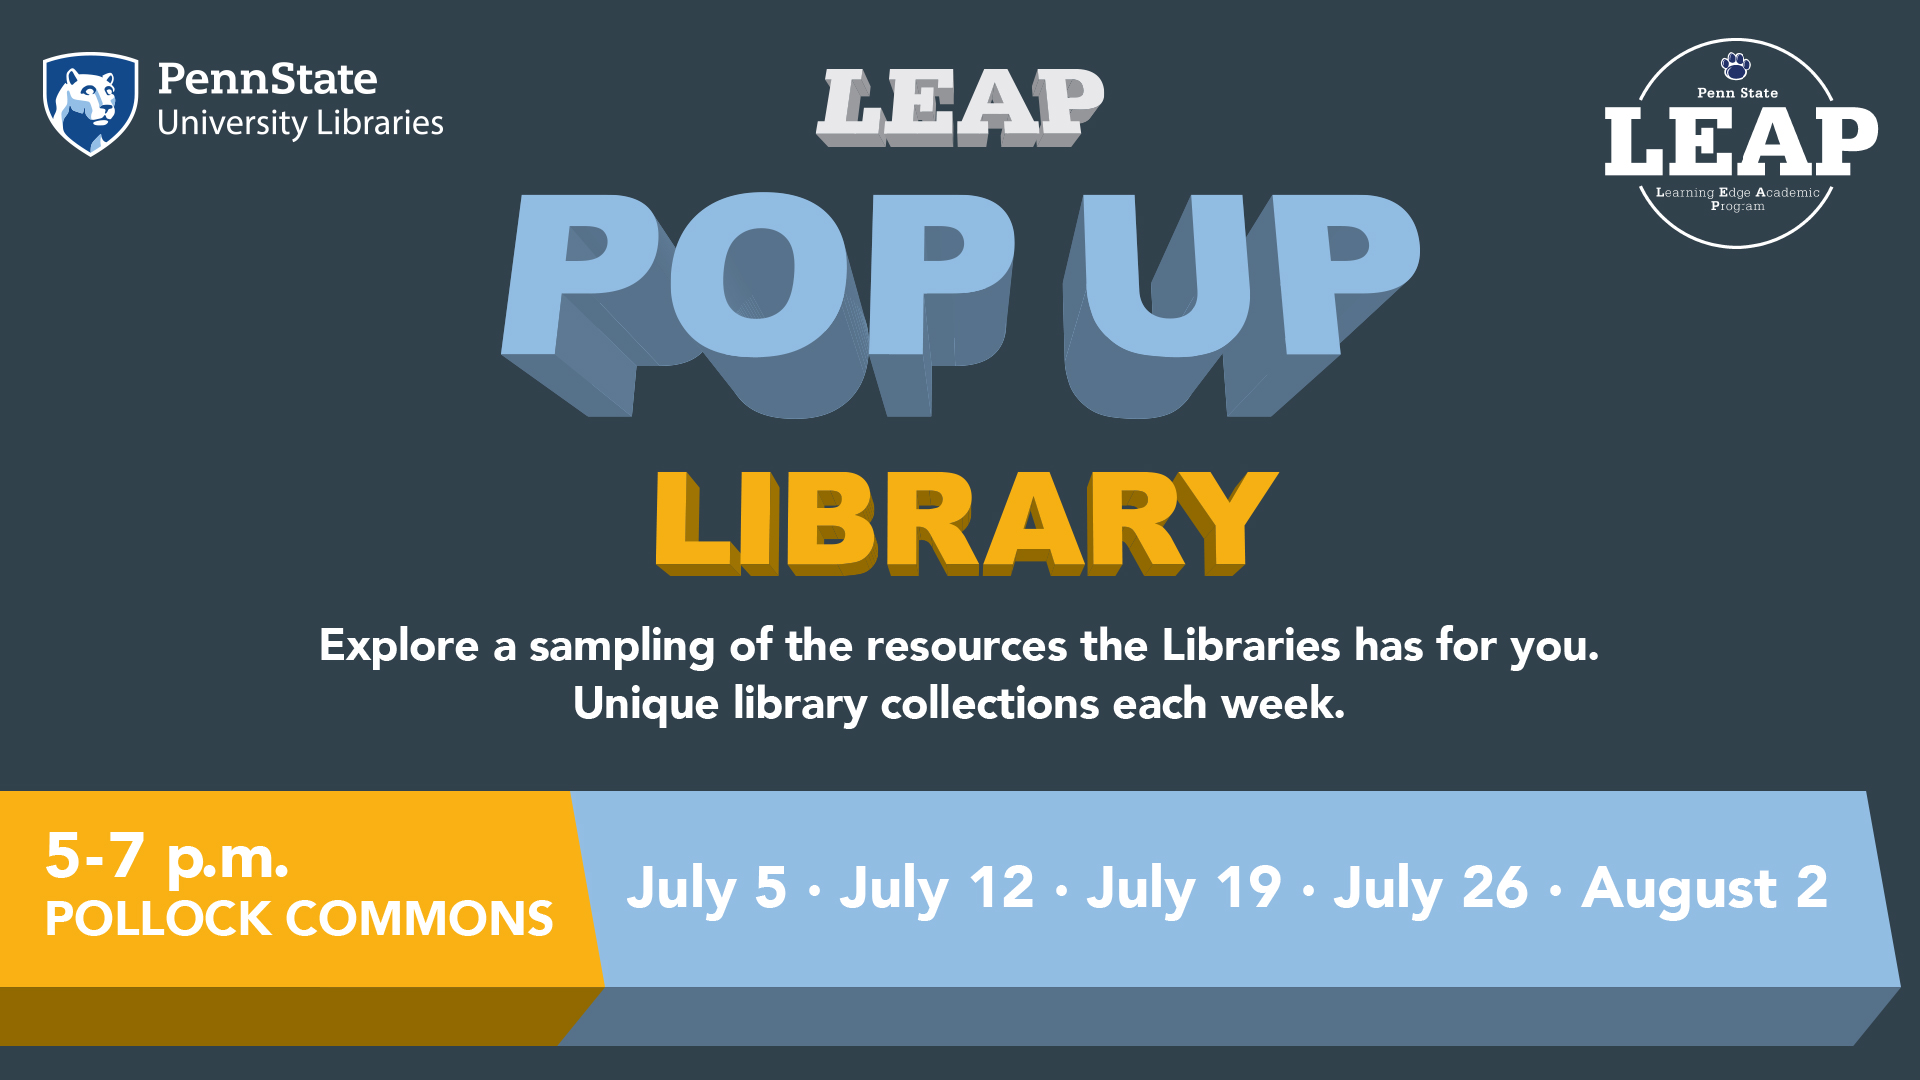 Digital sign advertising the Libraries Pop Up Libraries for the LEAP program